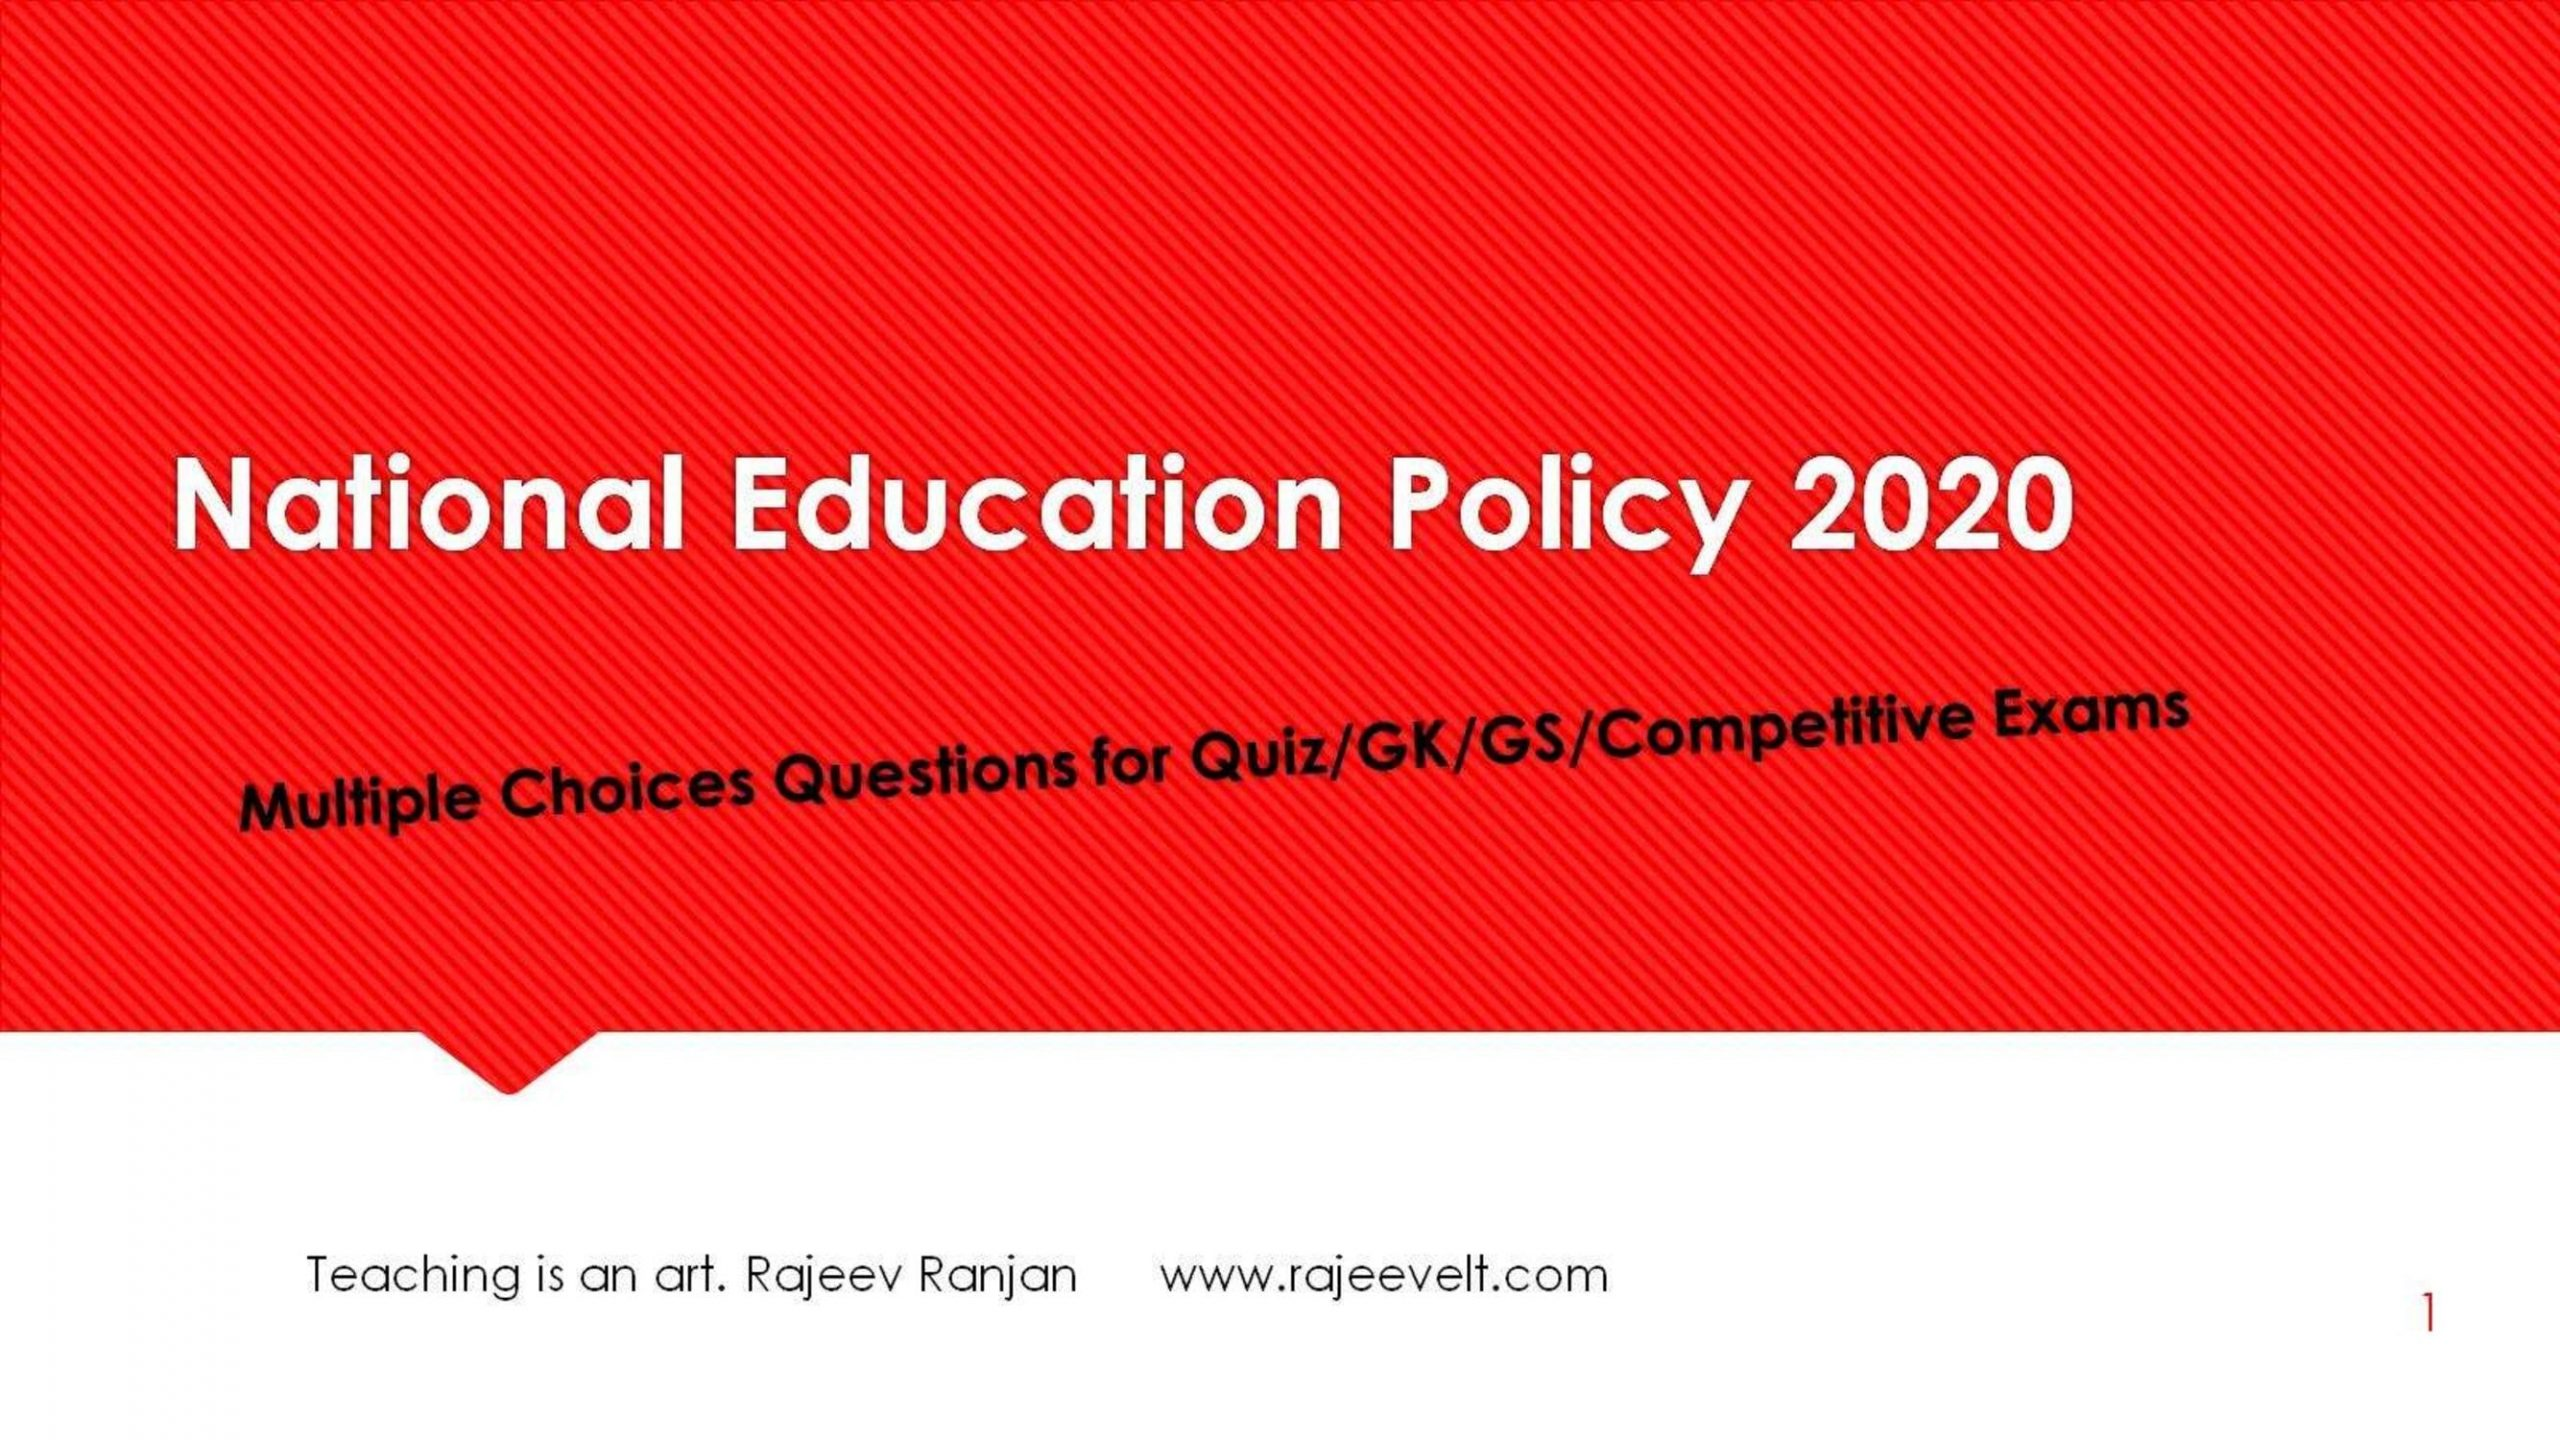 MCQs-FAQs-on-National-Education-Policy-2020-Set-5-rajeevelt